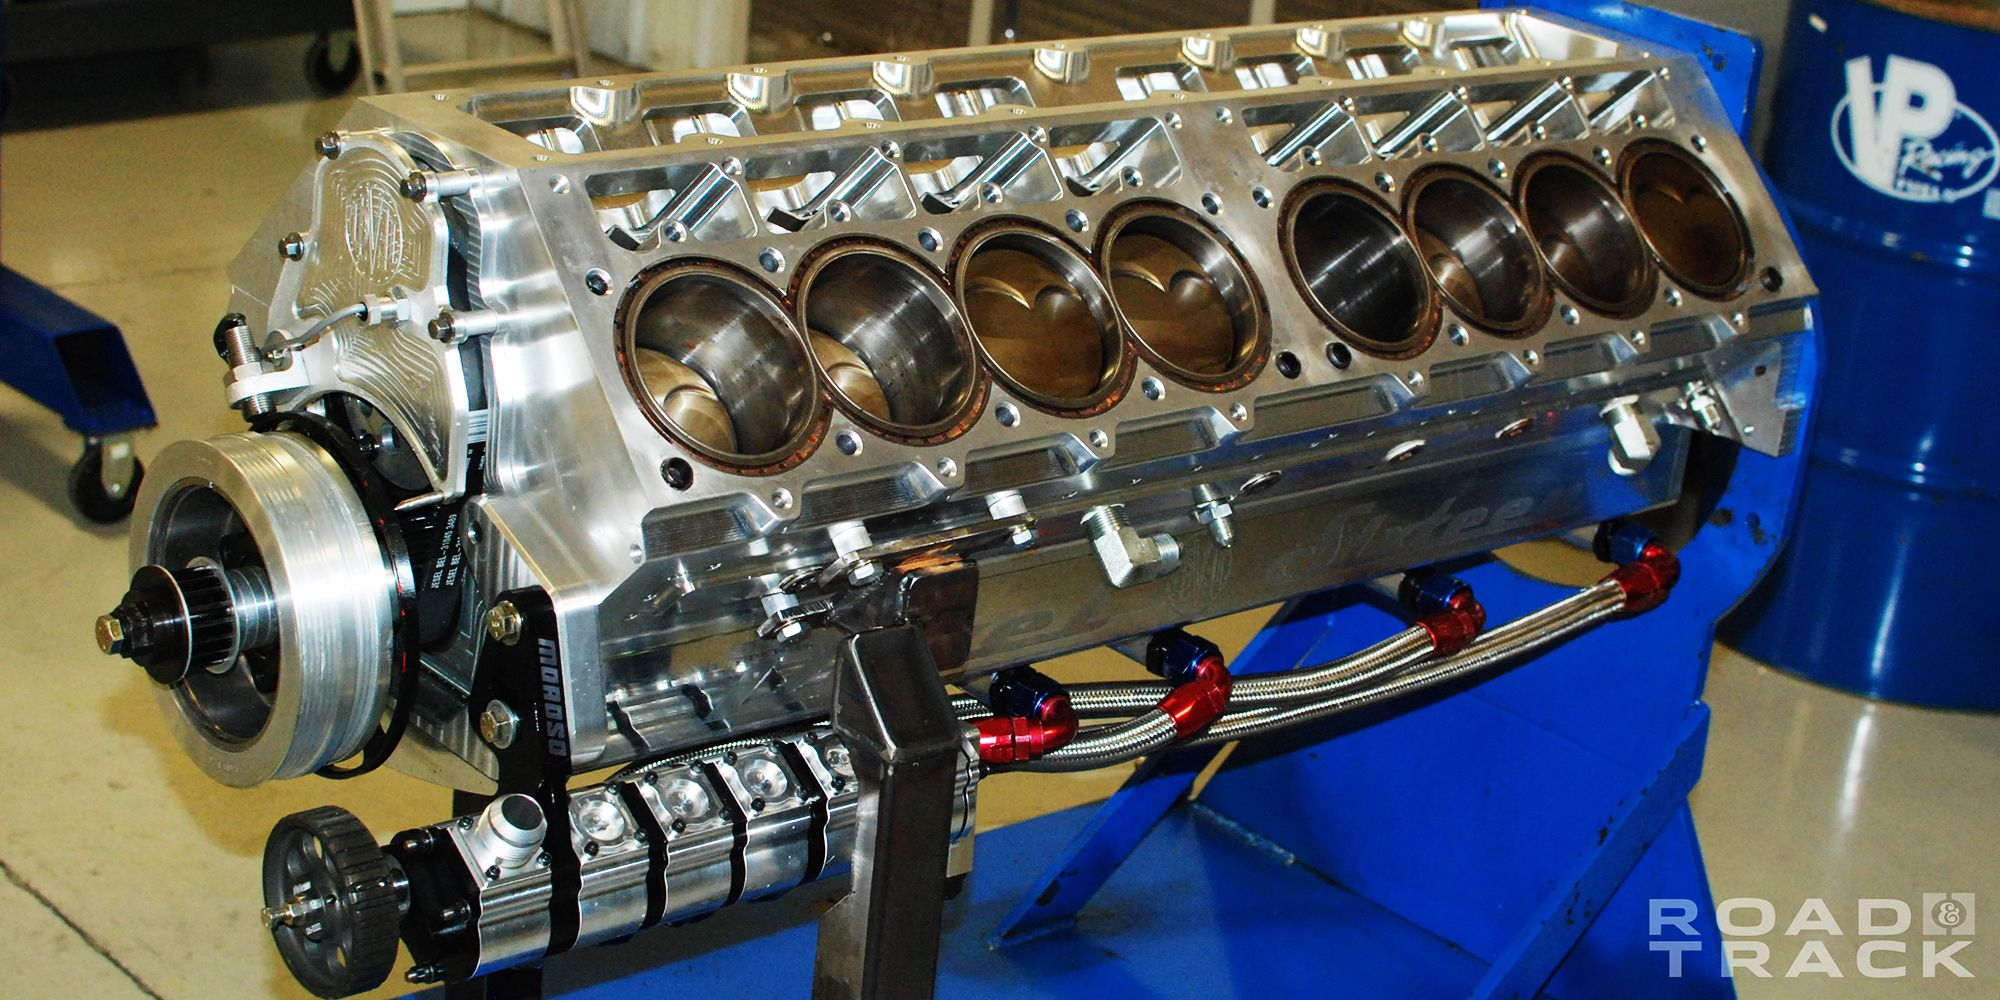 That Crazy 5000-hp, Quad-Turbo, 12 3-Liter V16 Is So Much